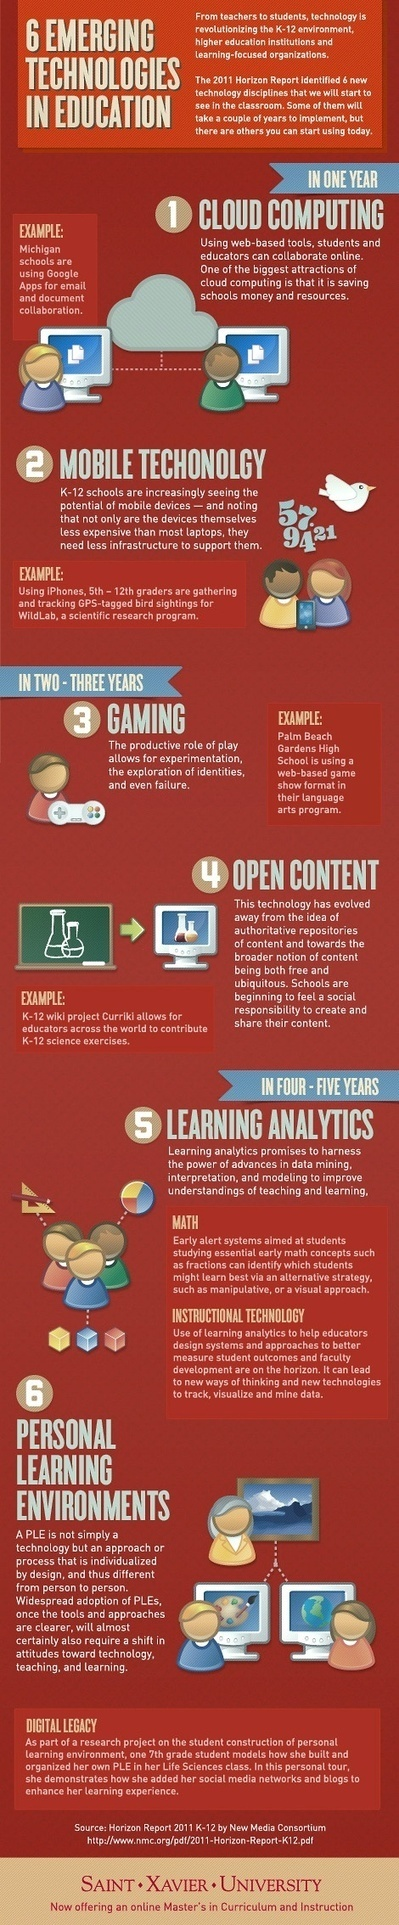 6 Emerging Technologies In Education | Technology Education and History | Pinterest | Technology in the Upper Primary Classroom | Scoop.it